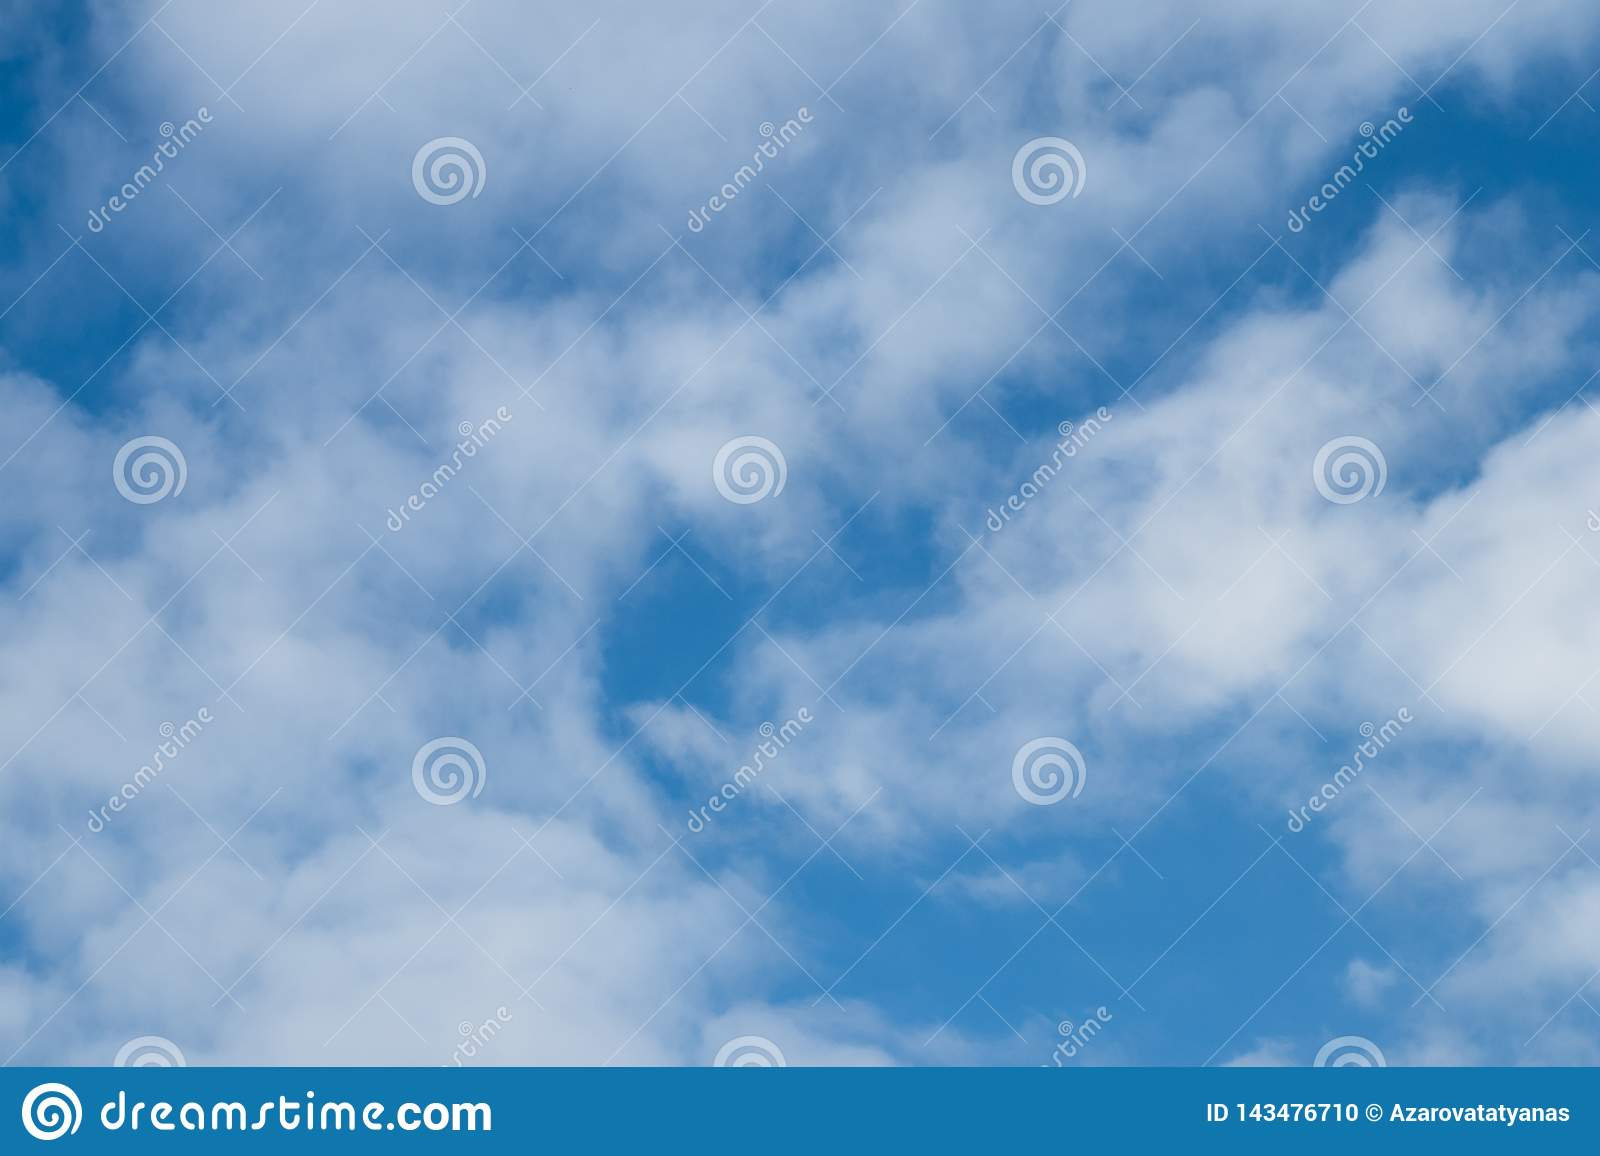 Blue sky texture with clouds. Sky blue clouds background. Space texture. Natural scene of cloudscape. Abstract pattern with cloud